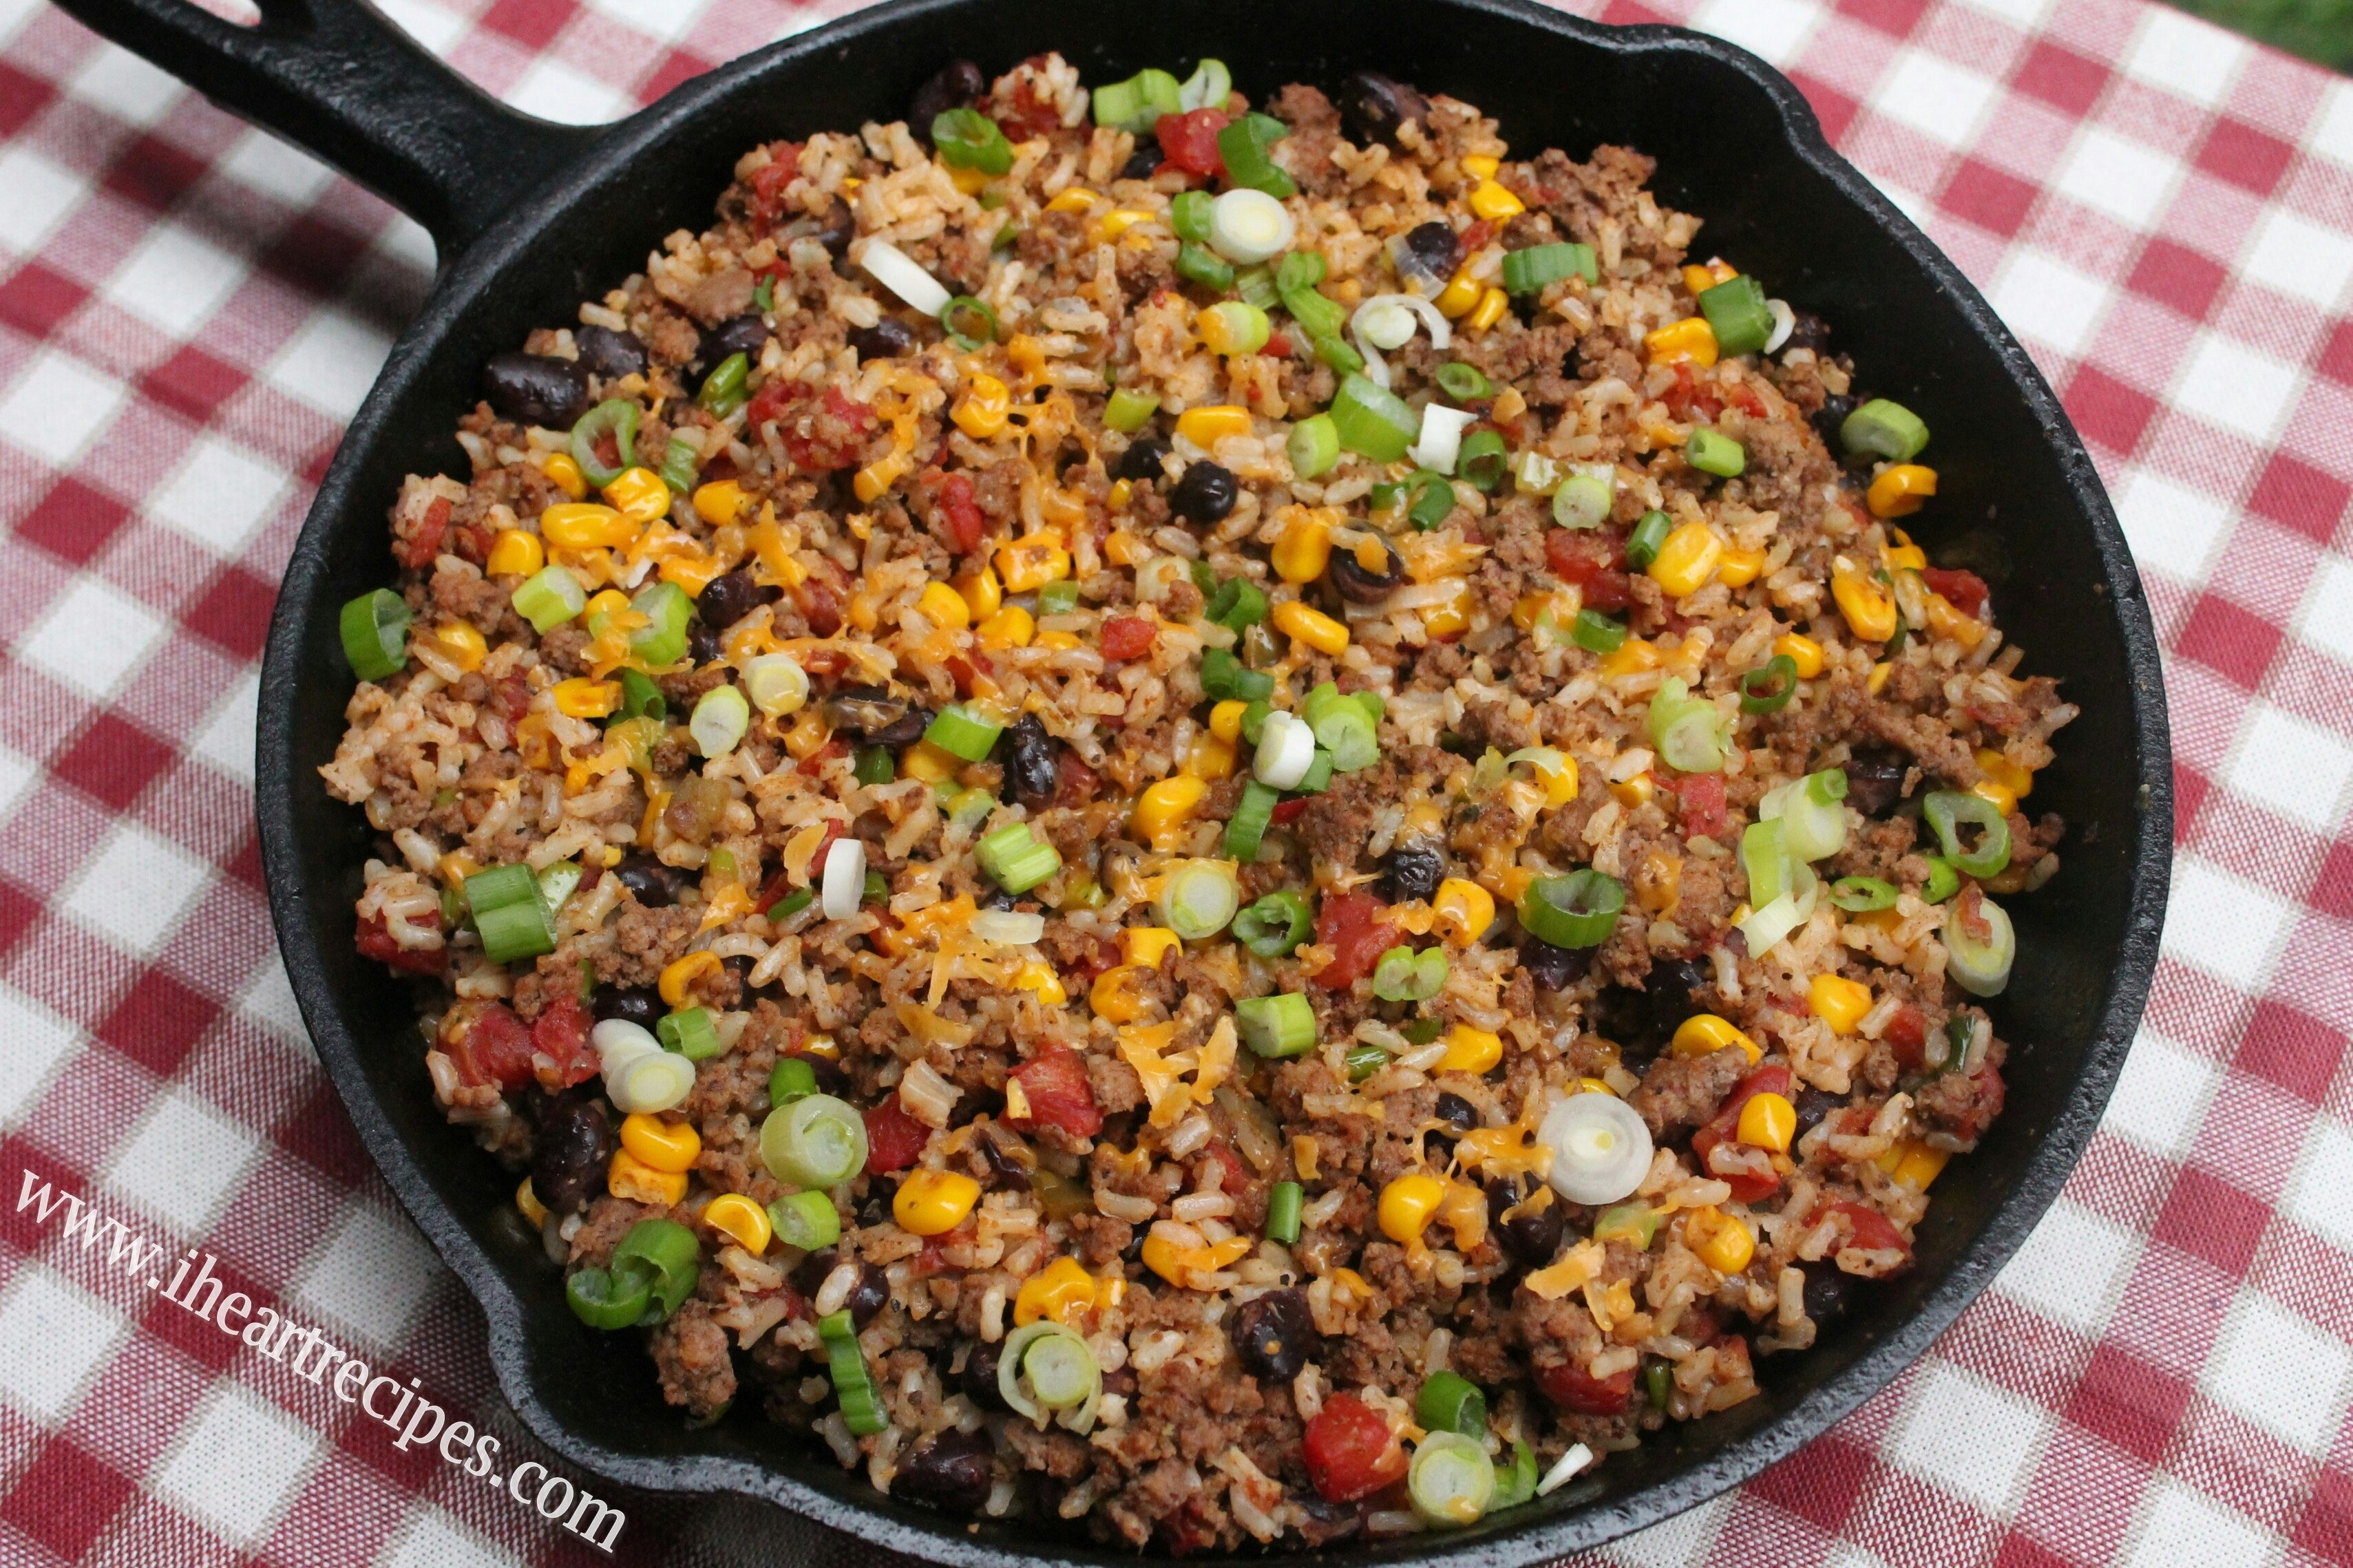 10 Fashionable Meal Ideas With Ground Beef tex mex beef skillet i heart recipes 31 2020